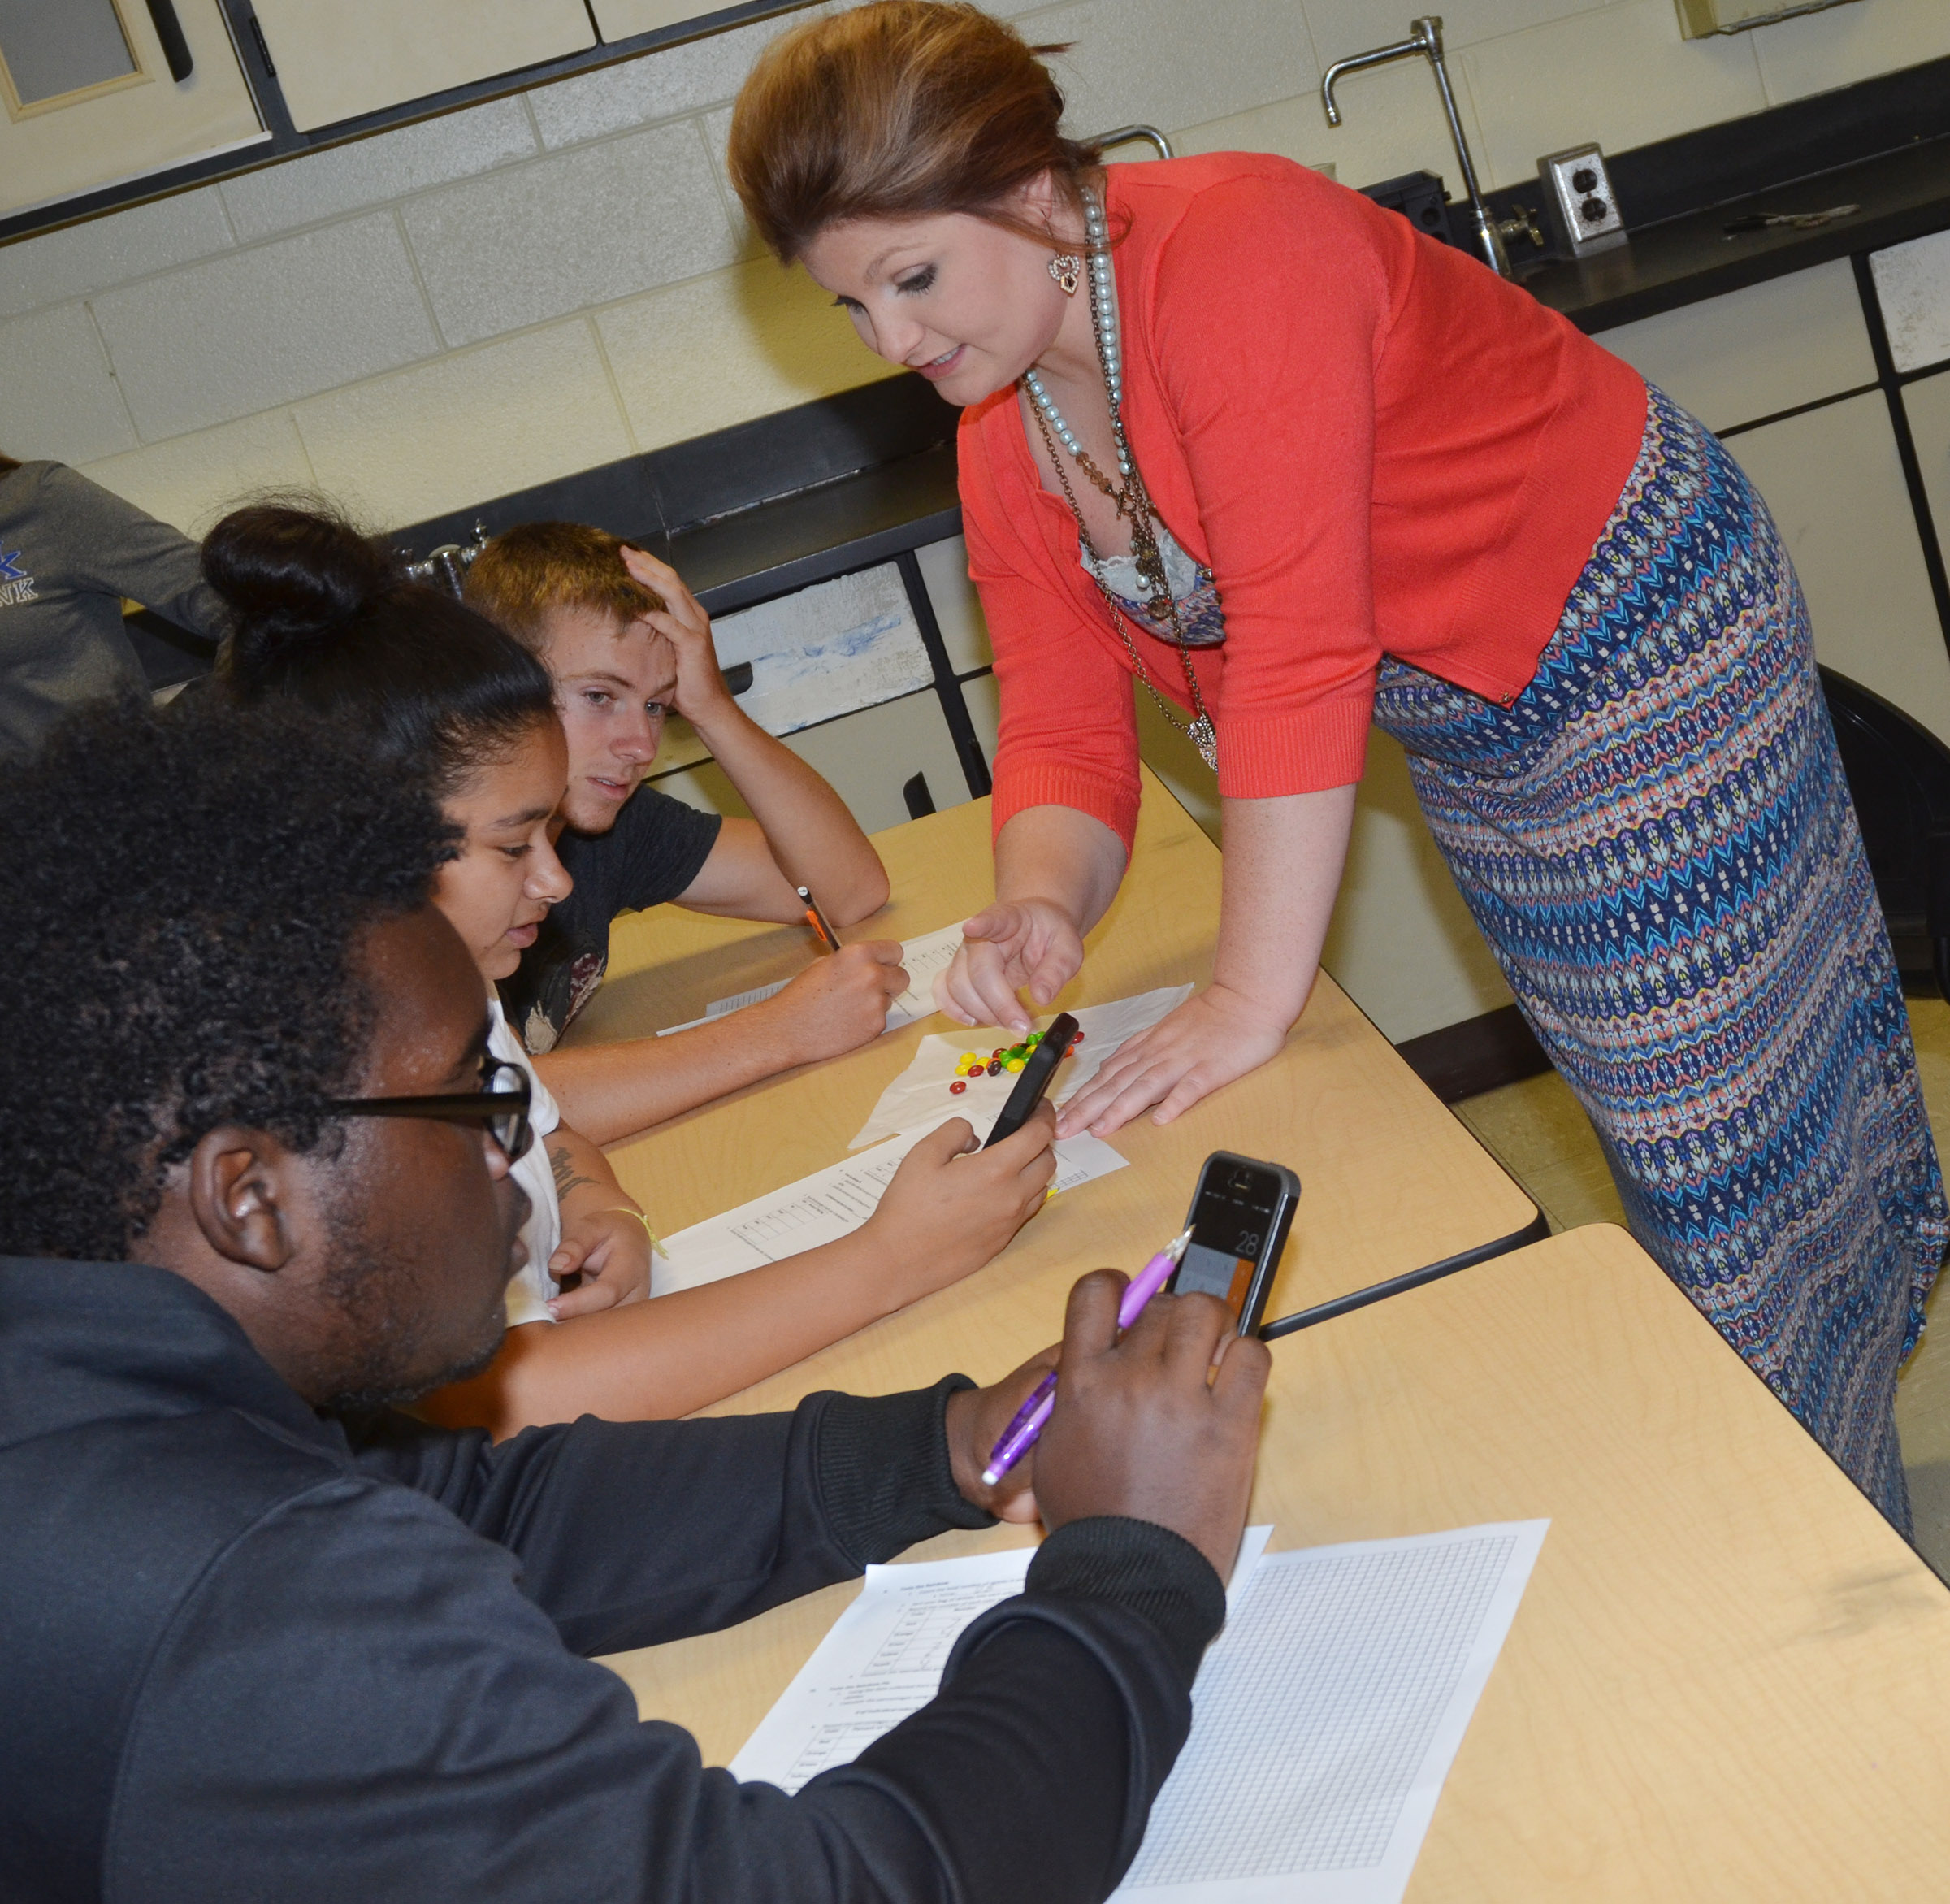 CHS teacher Lauren Bennett helps sophomores, from left, Taekwon McCoy, Cristina Barrera and Michael Griffiths as they create their graphs.